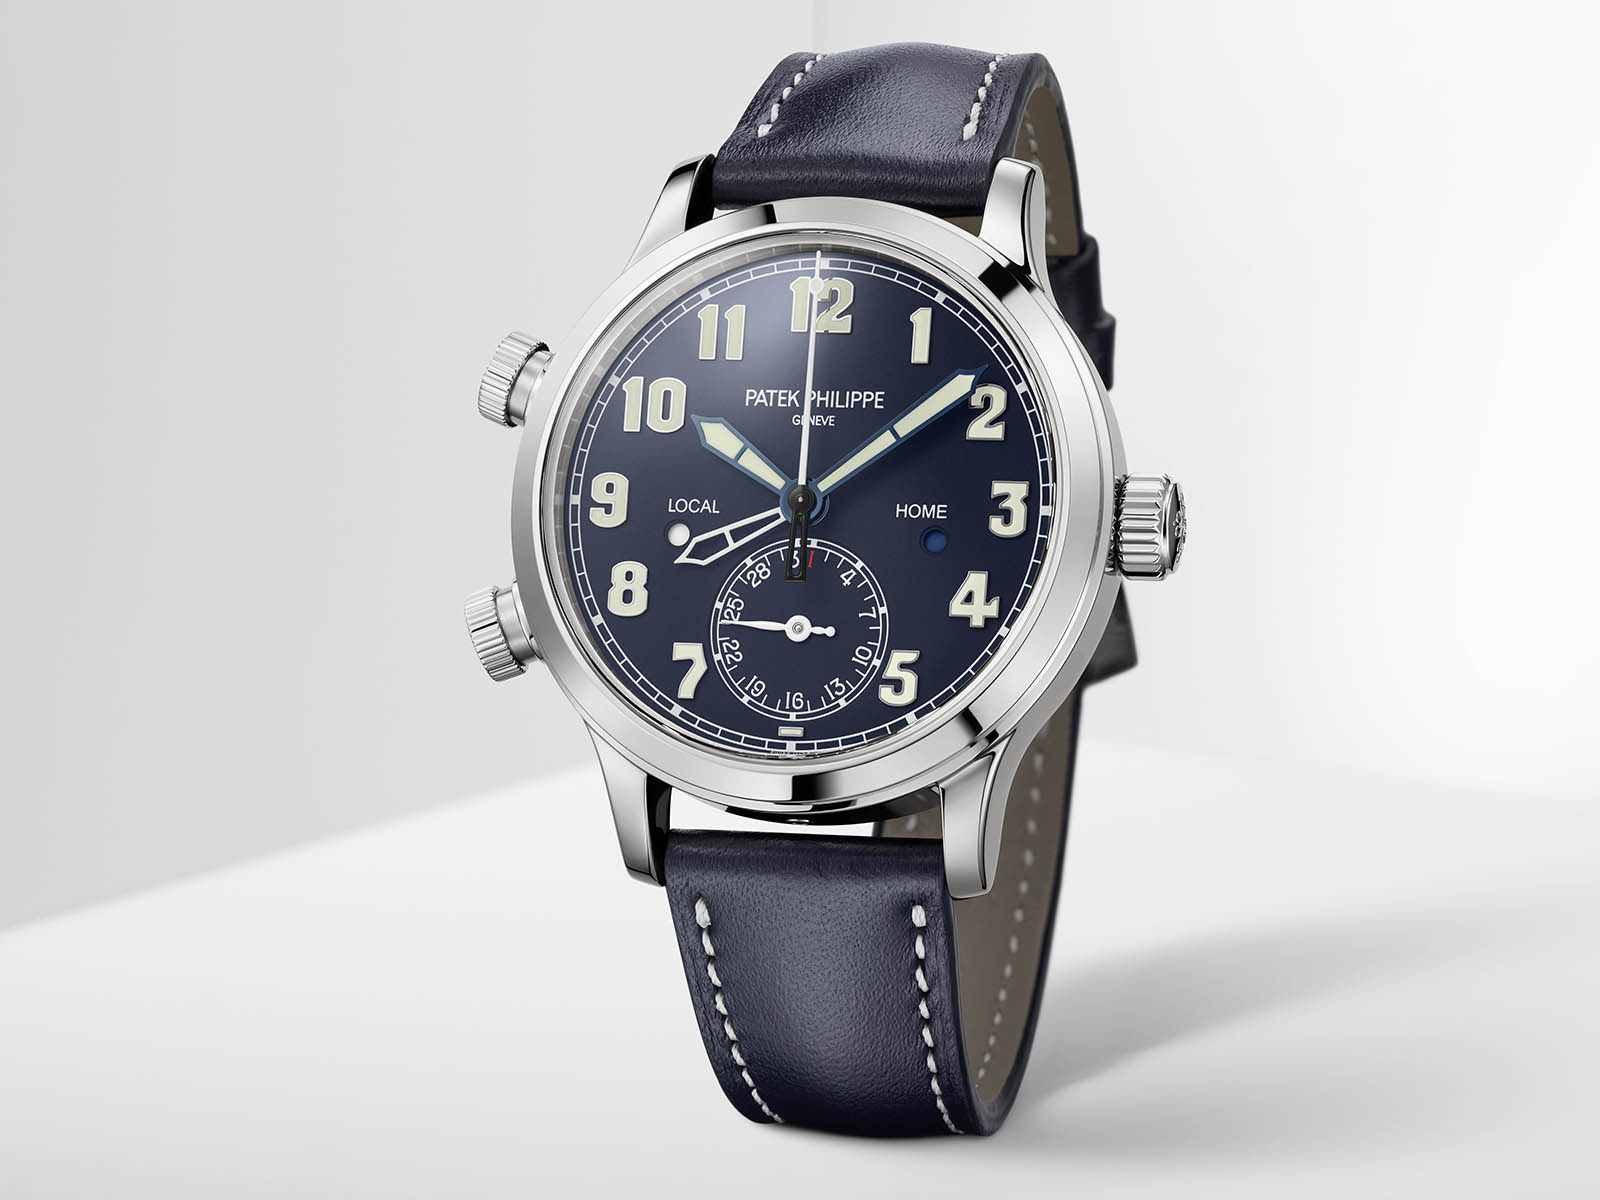 7234g-001-patek-philippe-calatrava-pilot-travel-time-6.jpg